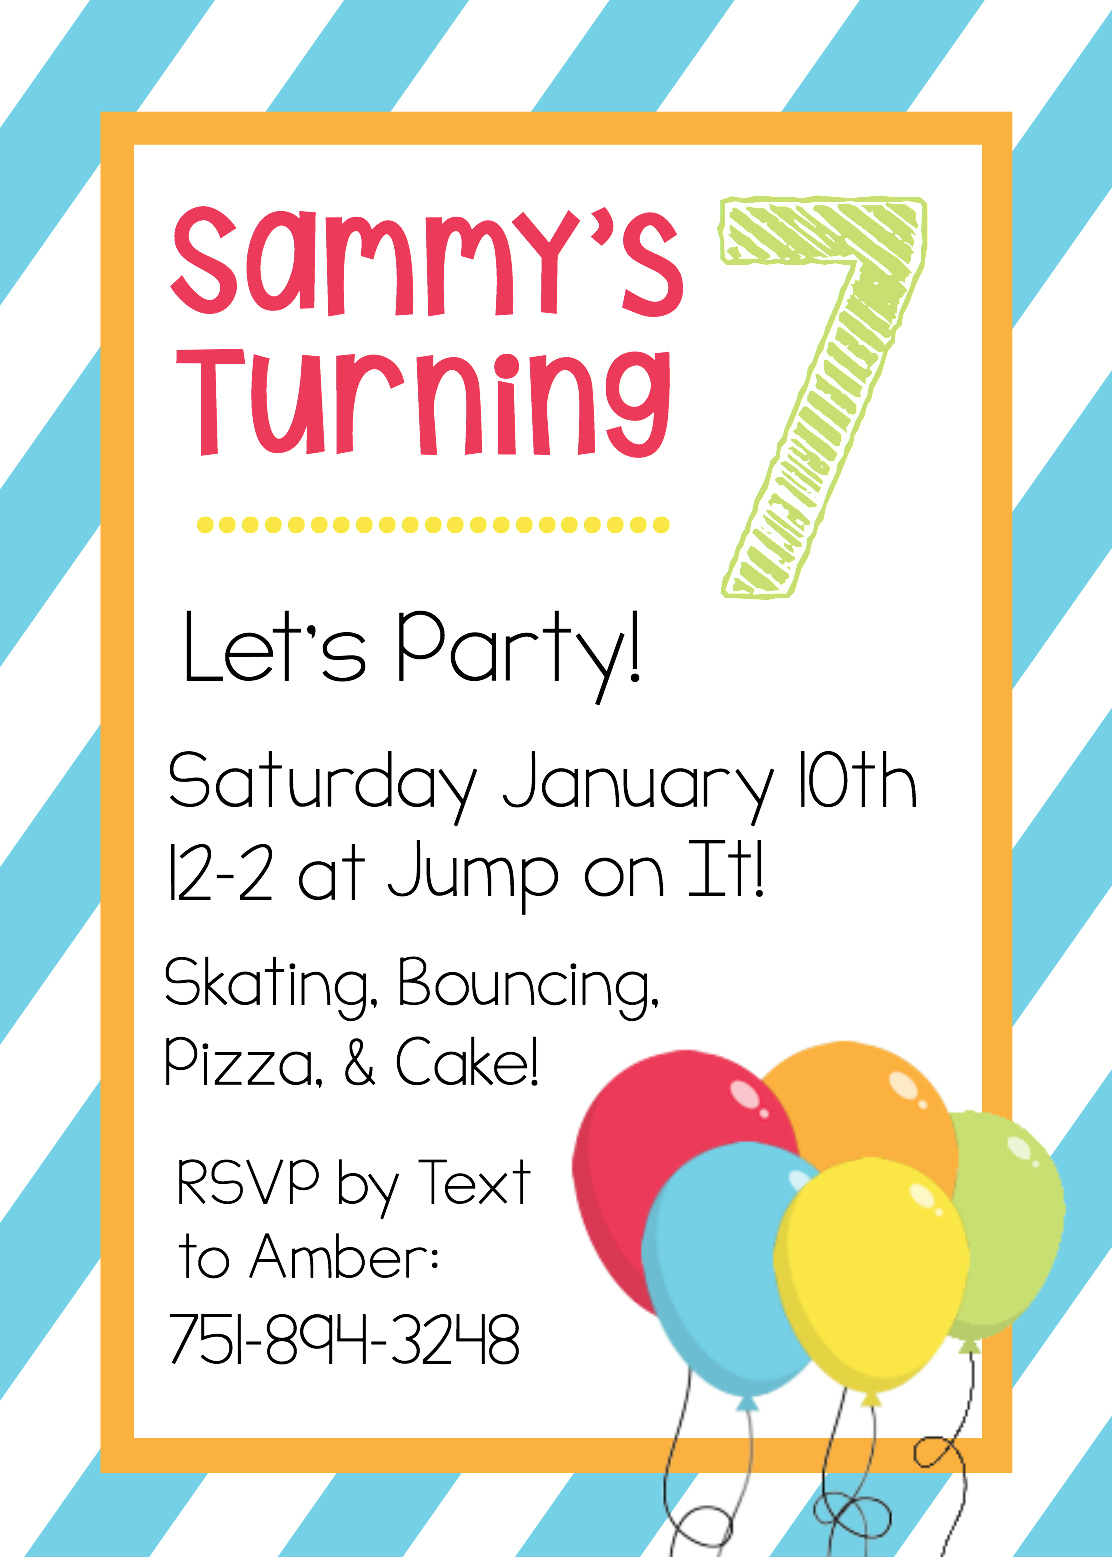 Free text birthday invitations yeniscale free printable birthday invitation templates filmwisefo